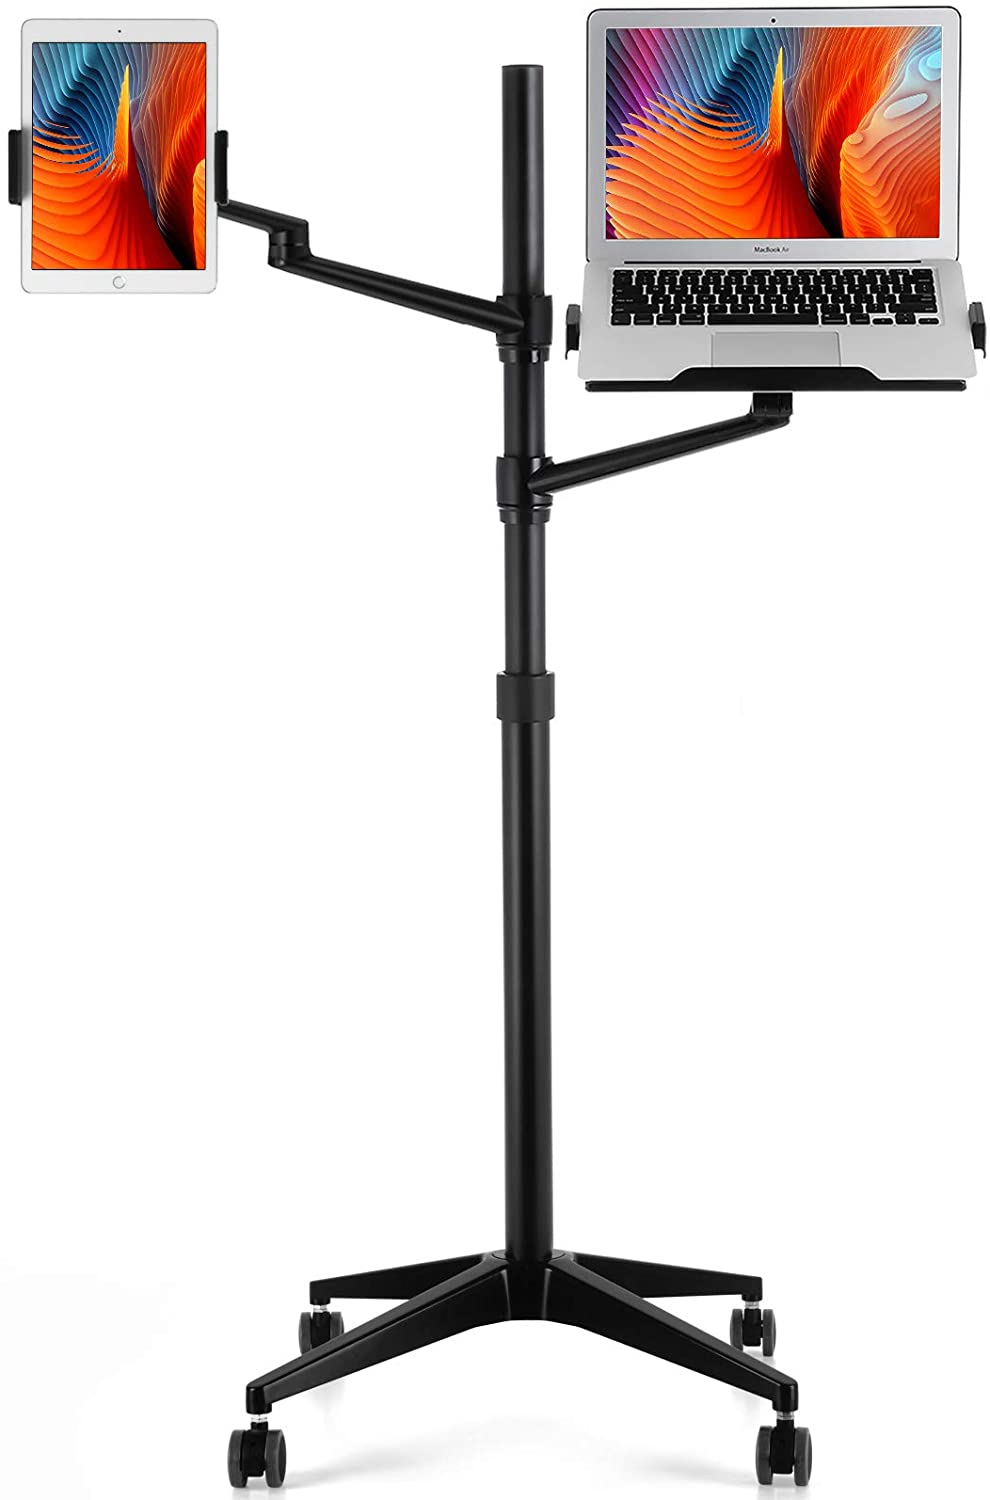 viozon Brand Cheap Sale Venue Tablet and Some reservation Laptop Floor Rolling 2-in-1 Stand Adjustable